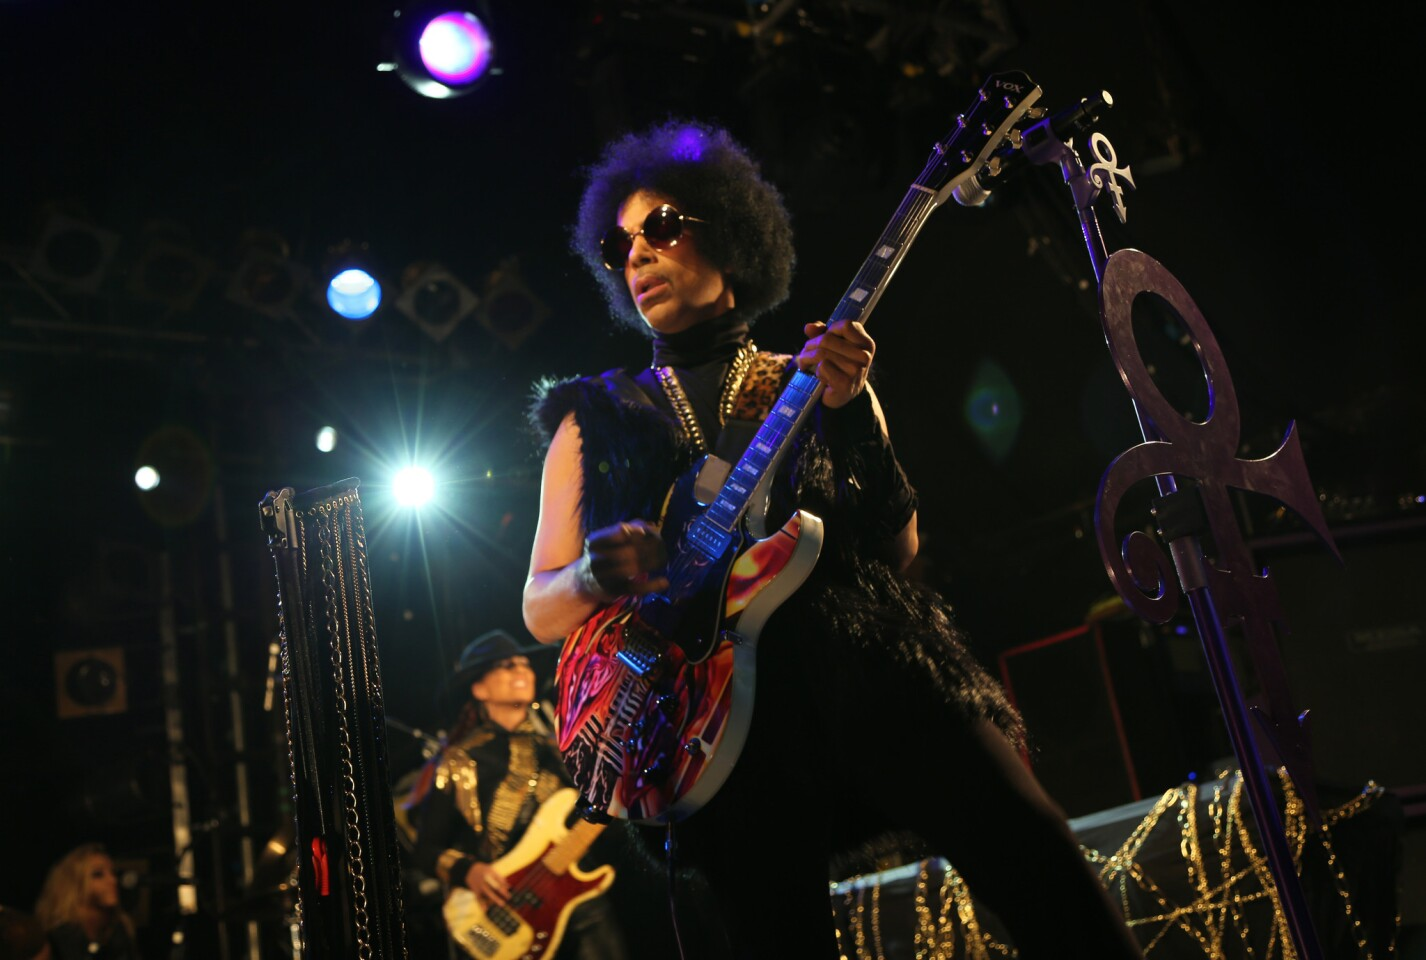 """Prince rocked the Hollywood Palladium on Saturday with a surprise show that stretched into the wee hours of the morning. Backed by a 22-piece band, he proved the 2 1/2-hour wait and sticker price ($100, cash only) was worth it. He delivered electrifying takes on favorites like """"1999,"""" """"Take Me With U,"""" """"Nothing Compares 2 U,"""" """"Raspberry Beret,"""" """"U Got the Look"""" and that was just the main set. I'm still recovering from the dance-fest that happened during a funked-up reimagining of Michael Jackson's """"Don't Stop Till You Get Enough."""""""